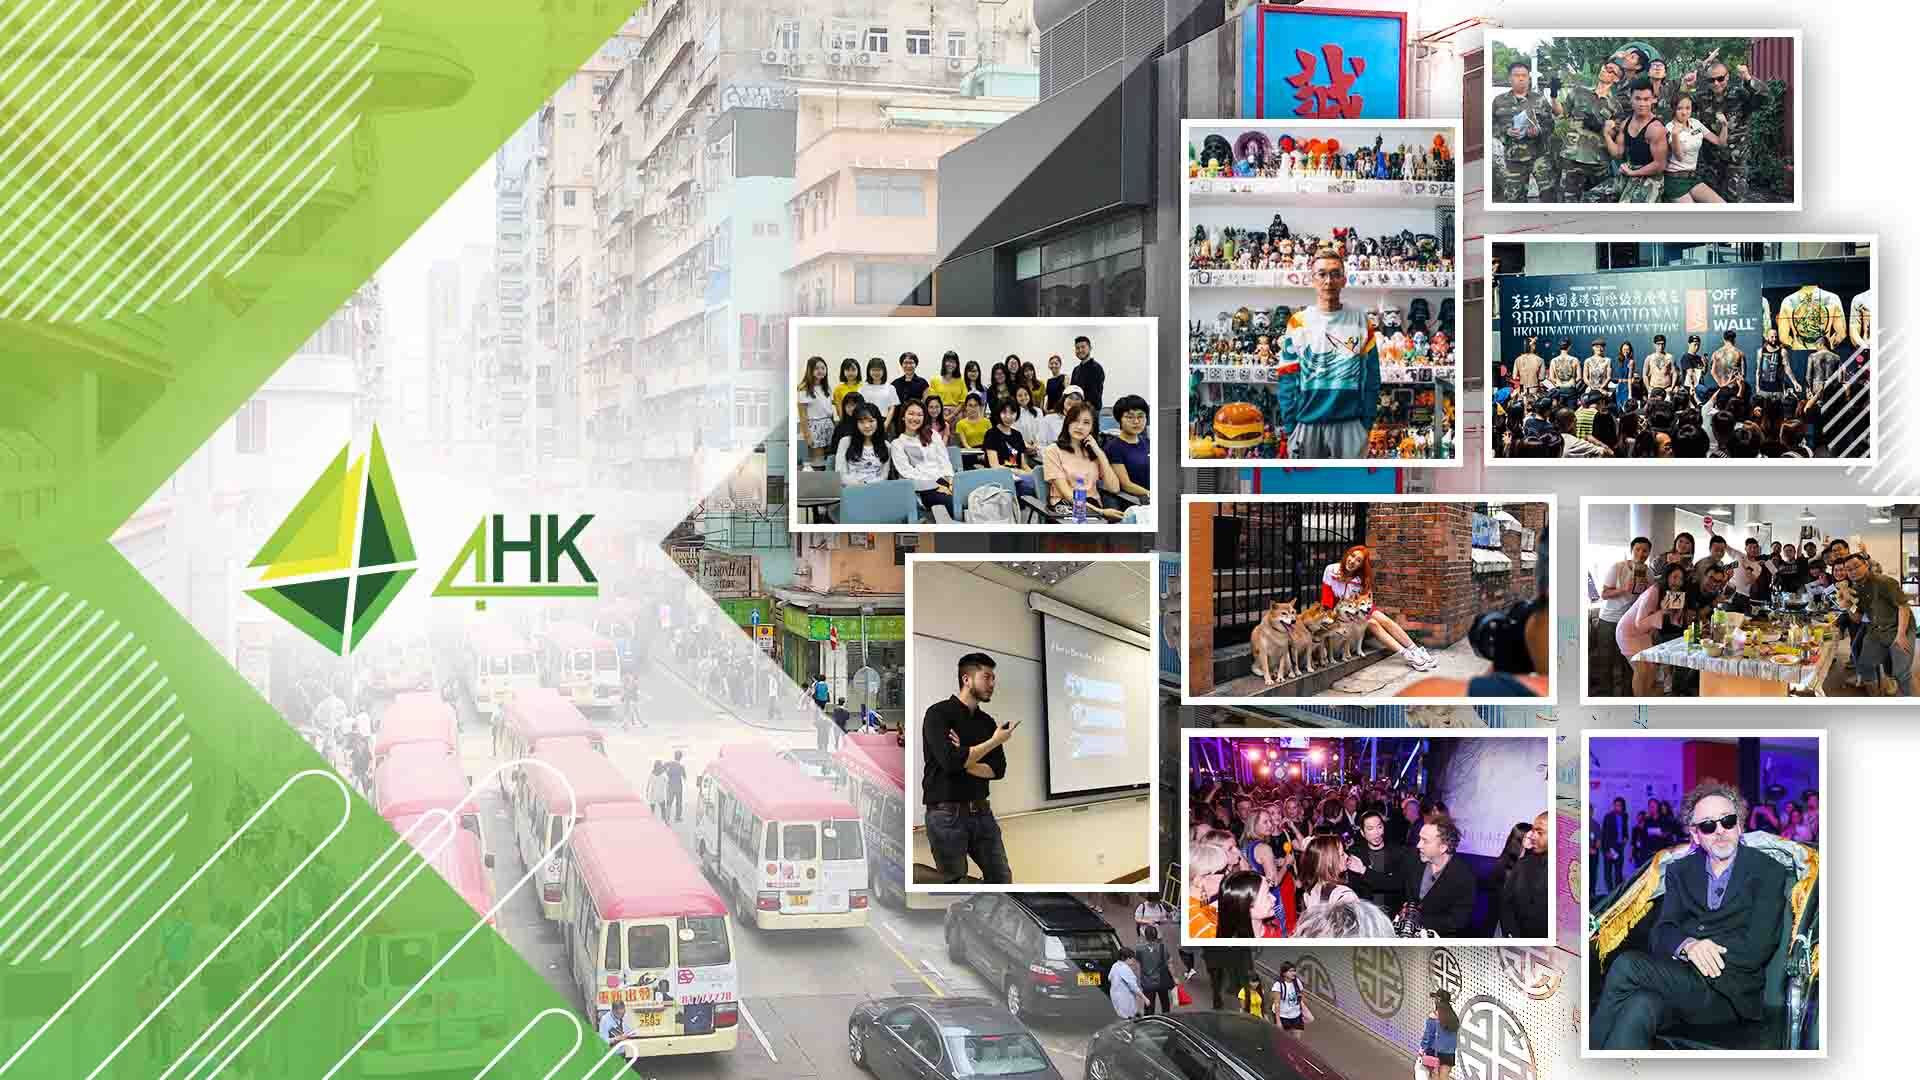 4HK Builds Brand Success Through Transparent and Integrated Digital Marketing Solutions